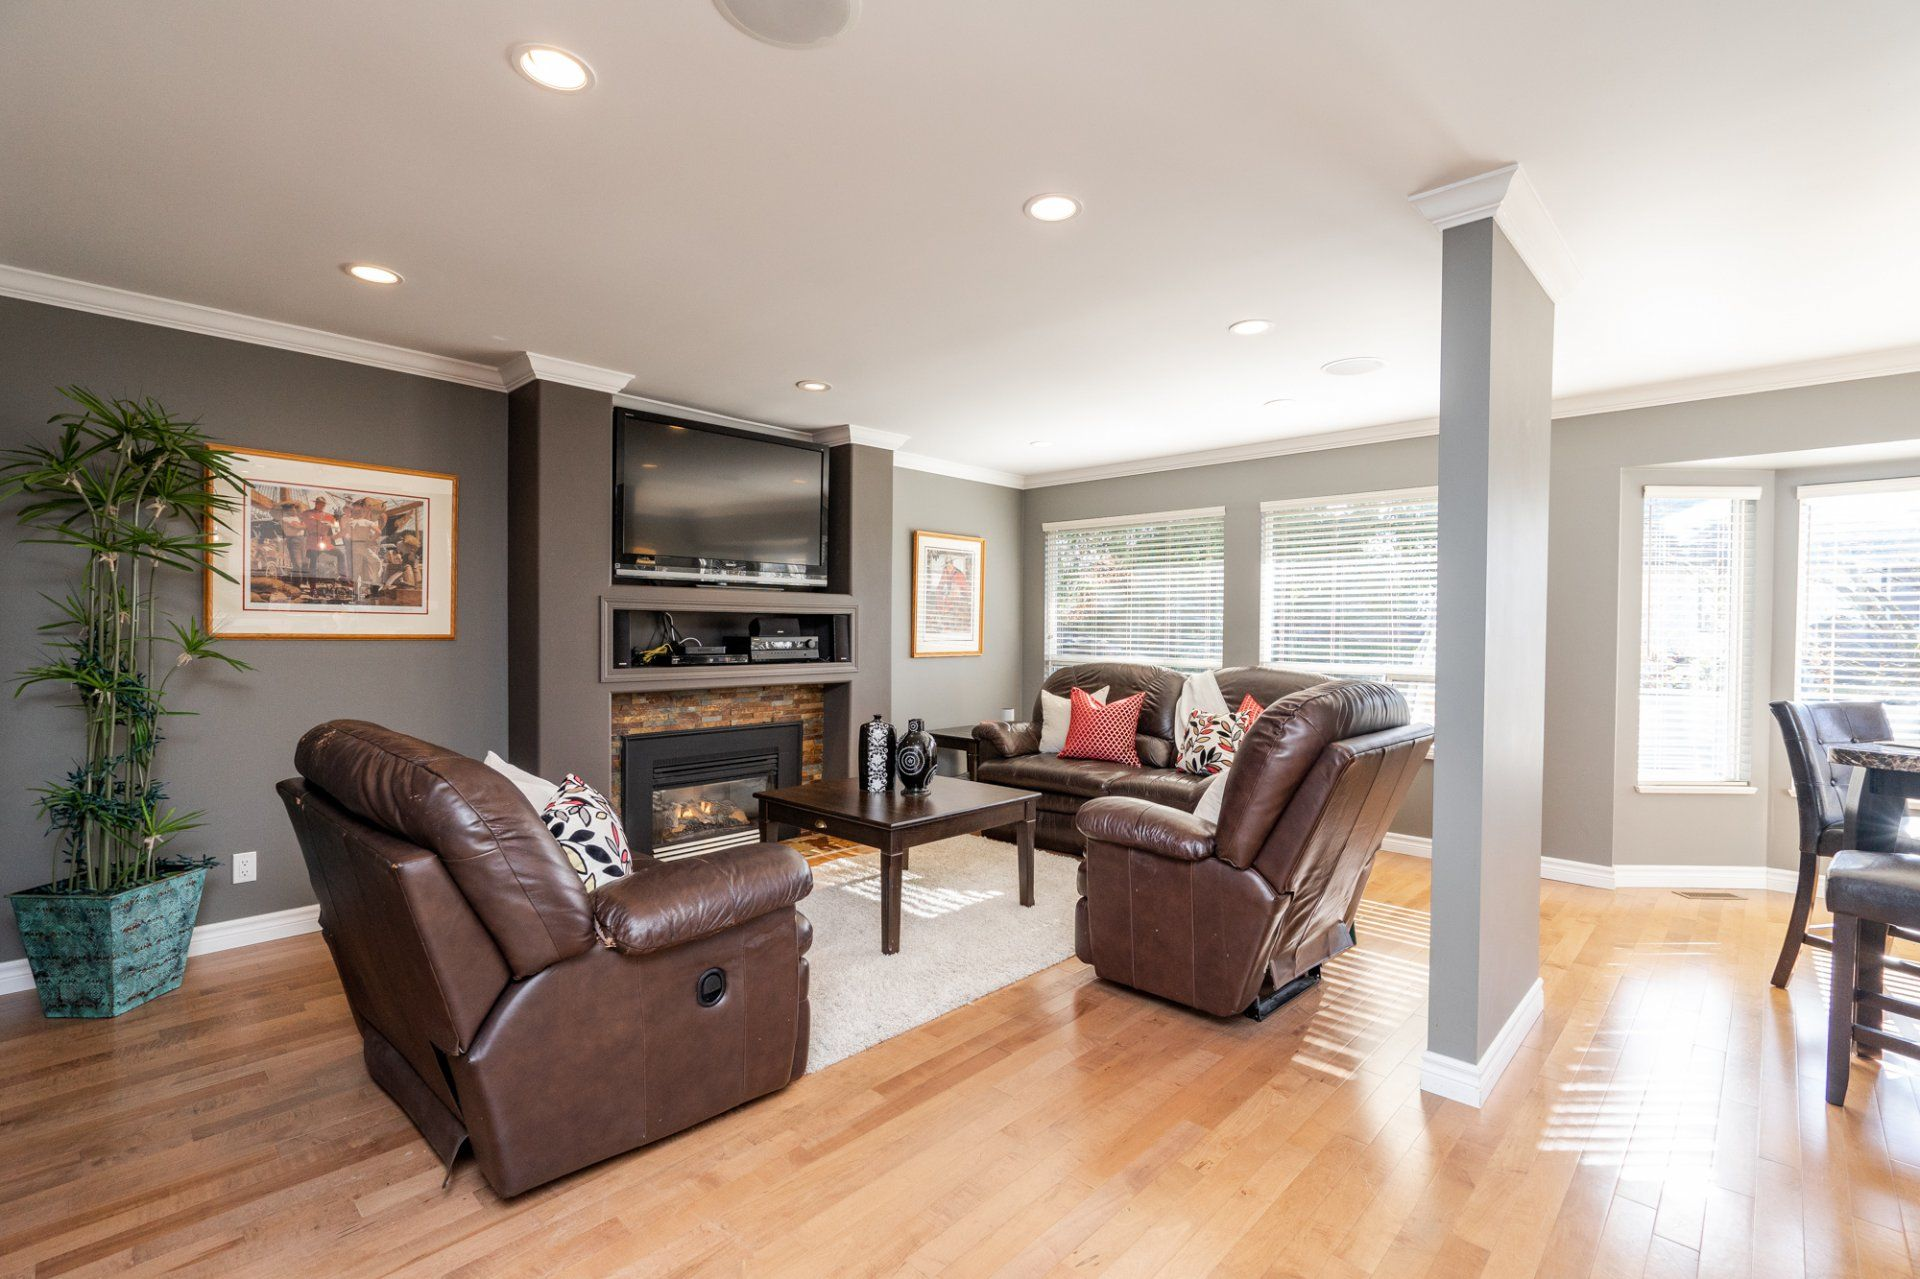 """Photo 11: Photos: 8448 213 Street in Langley: Walnut Grove House for sale in """"Forest Hills"""" : MLS®# R2259409"""